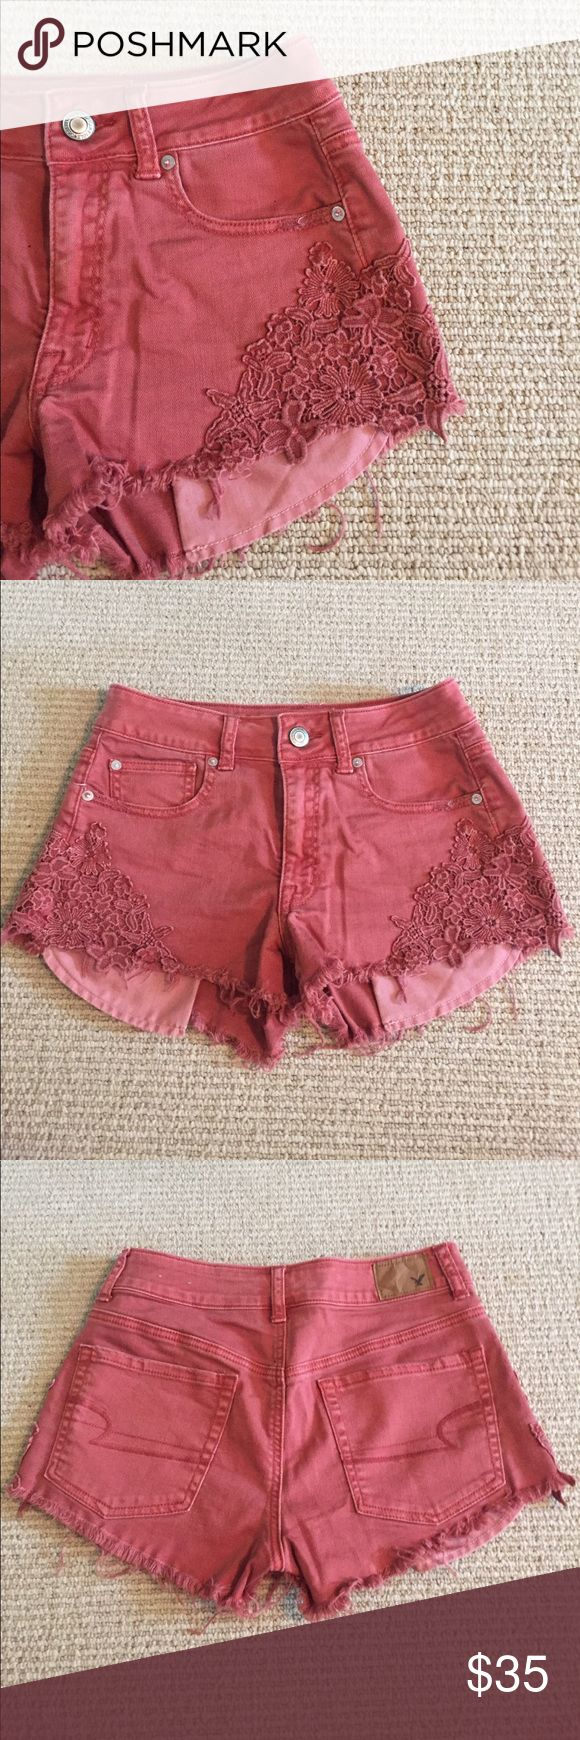 American Eagle Red Jean Shorts American Eagle red hi-rise festival shortie. Stretch fit with pretty crochet design on each side of the leg. Frayed at the bottom and then pockets hang out a little bit, but not too much! Super cute and comfortable shorts that aren't for sale at American Eagle anymore. American Eagle Outfitters Shorts